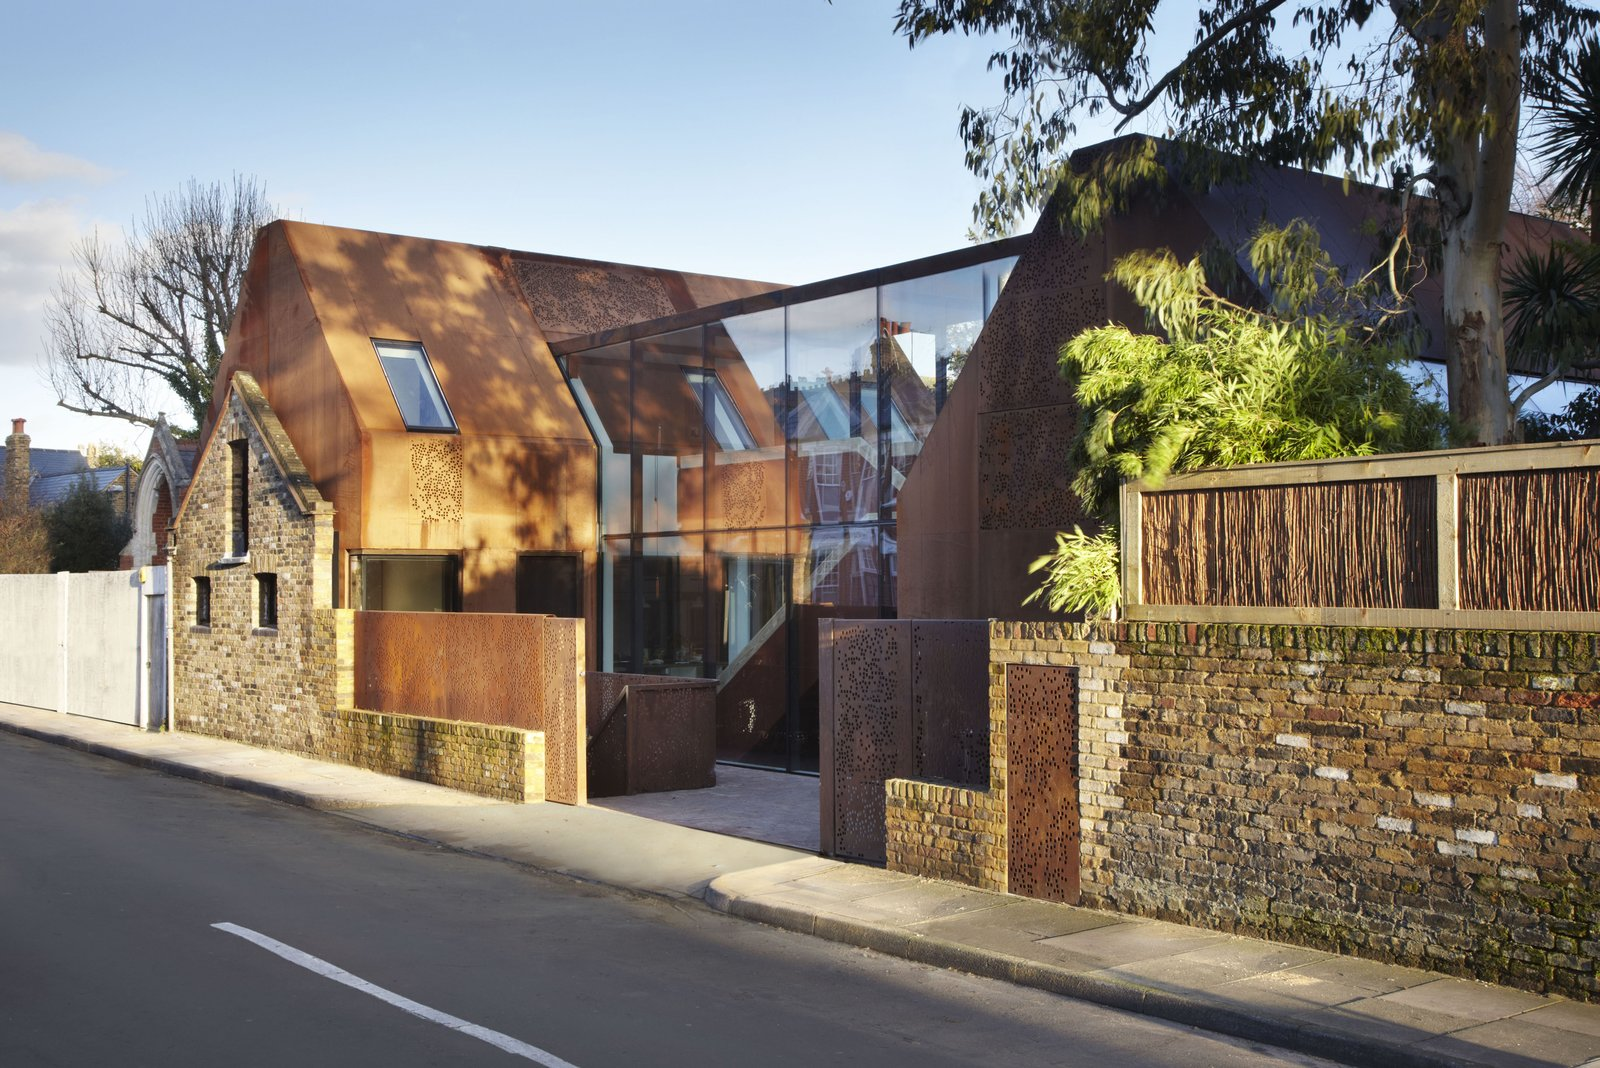 Outdoor  Photo 2 of 11 in Weathered Steel Clads a $4.7M Home Near London's Kew Gardens